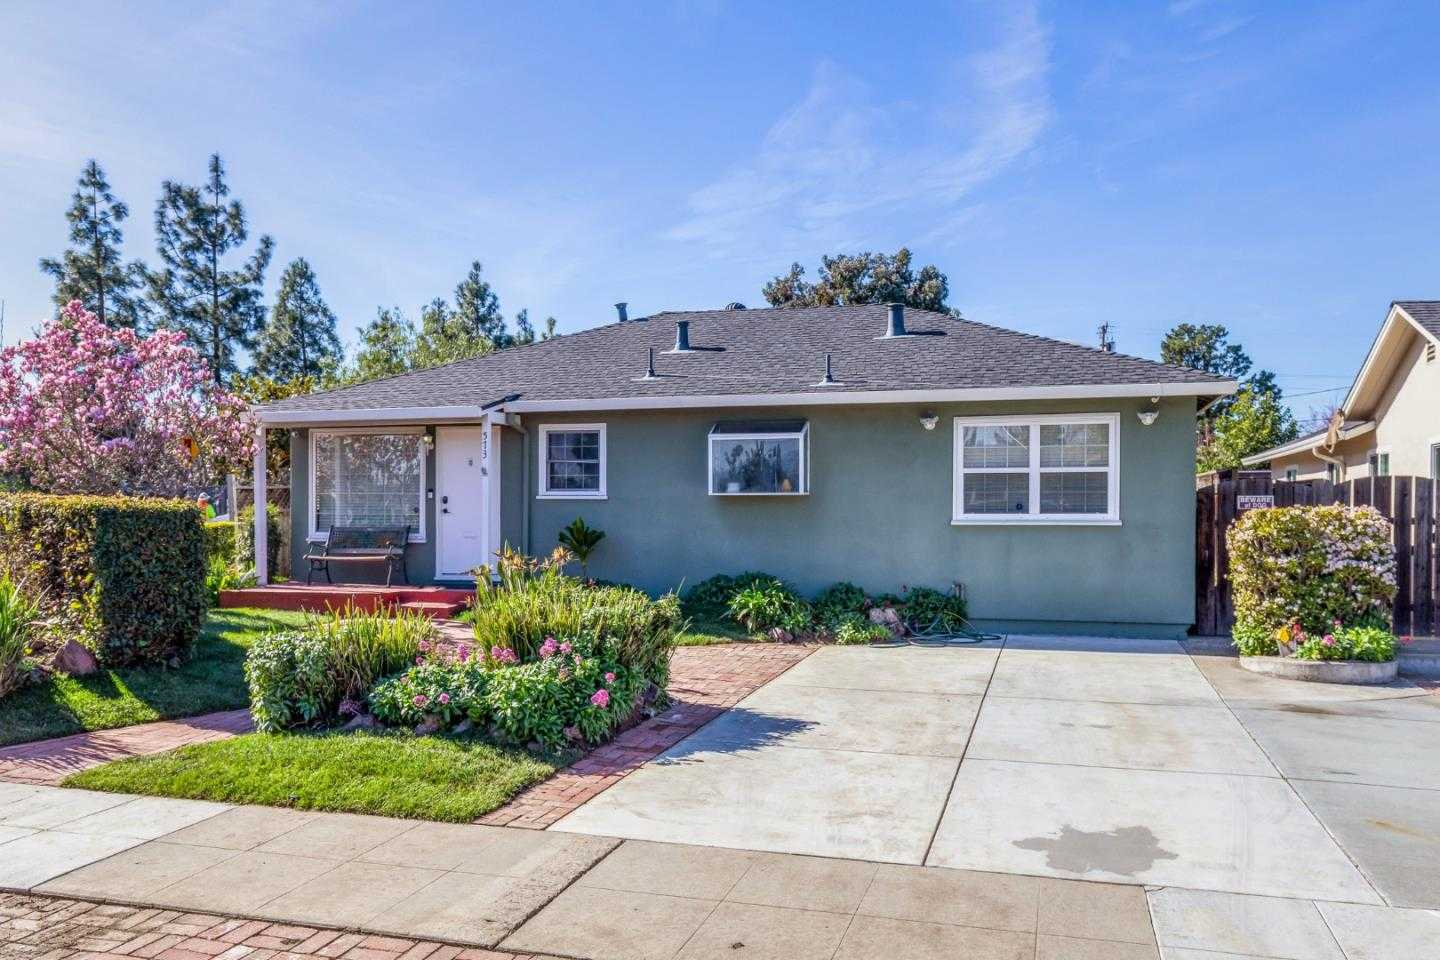 $1,099,888 - 3Br/3Ba -  for Sale in San Jose